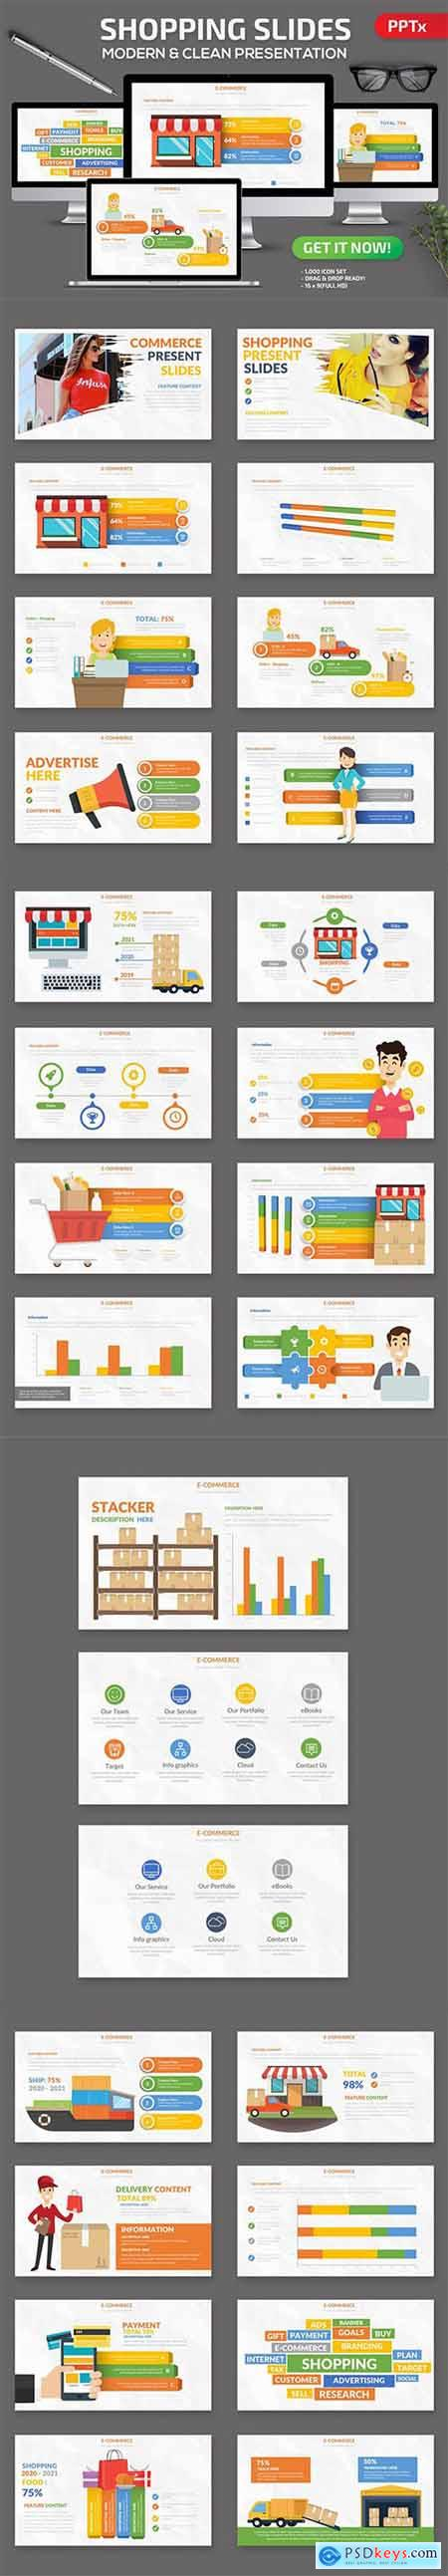 Shopping - Powerpoint and Keynote Templates